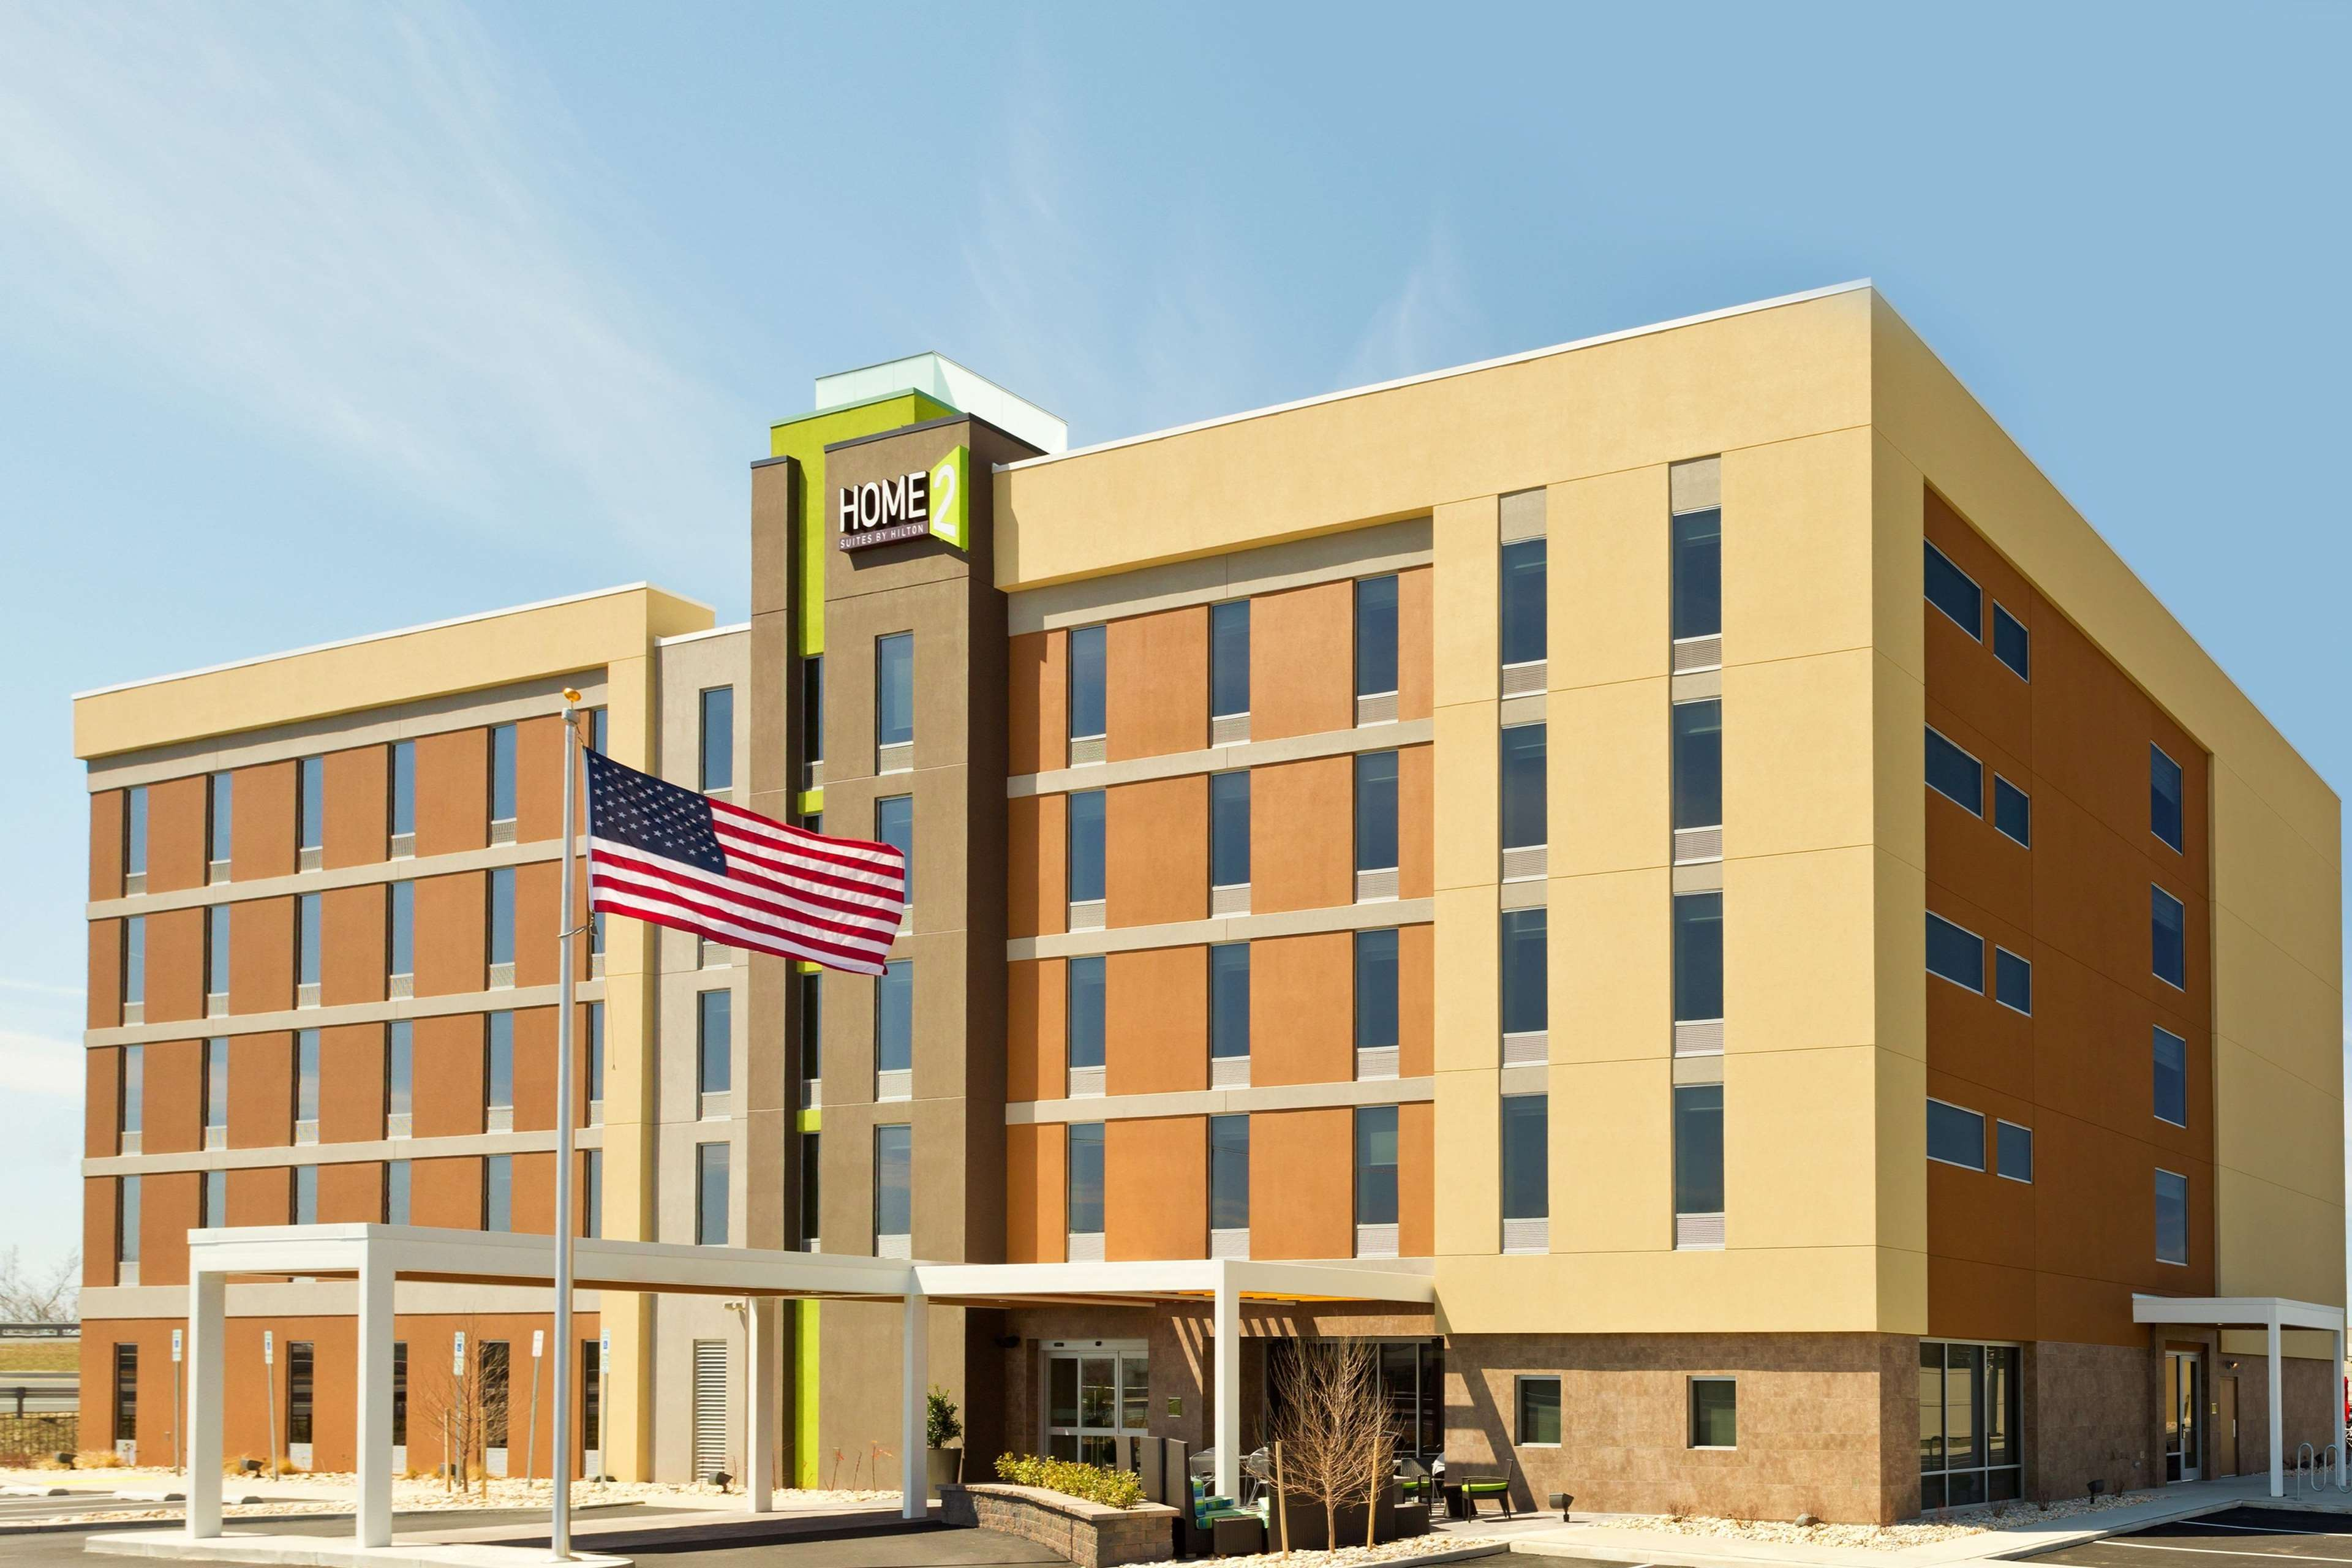 Home2 Suites by Hilton Baltimore / Aberdeen, MD image 0